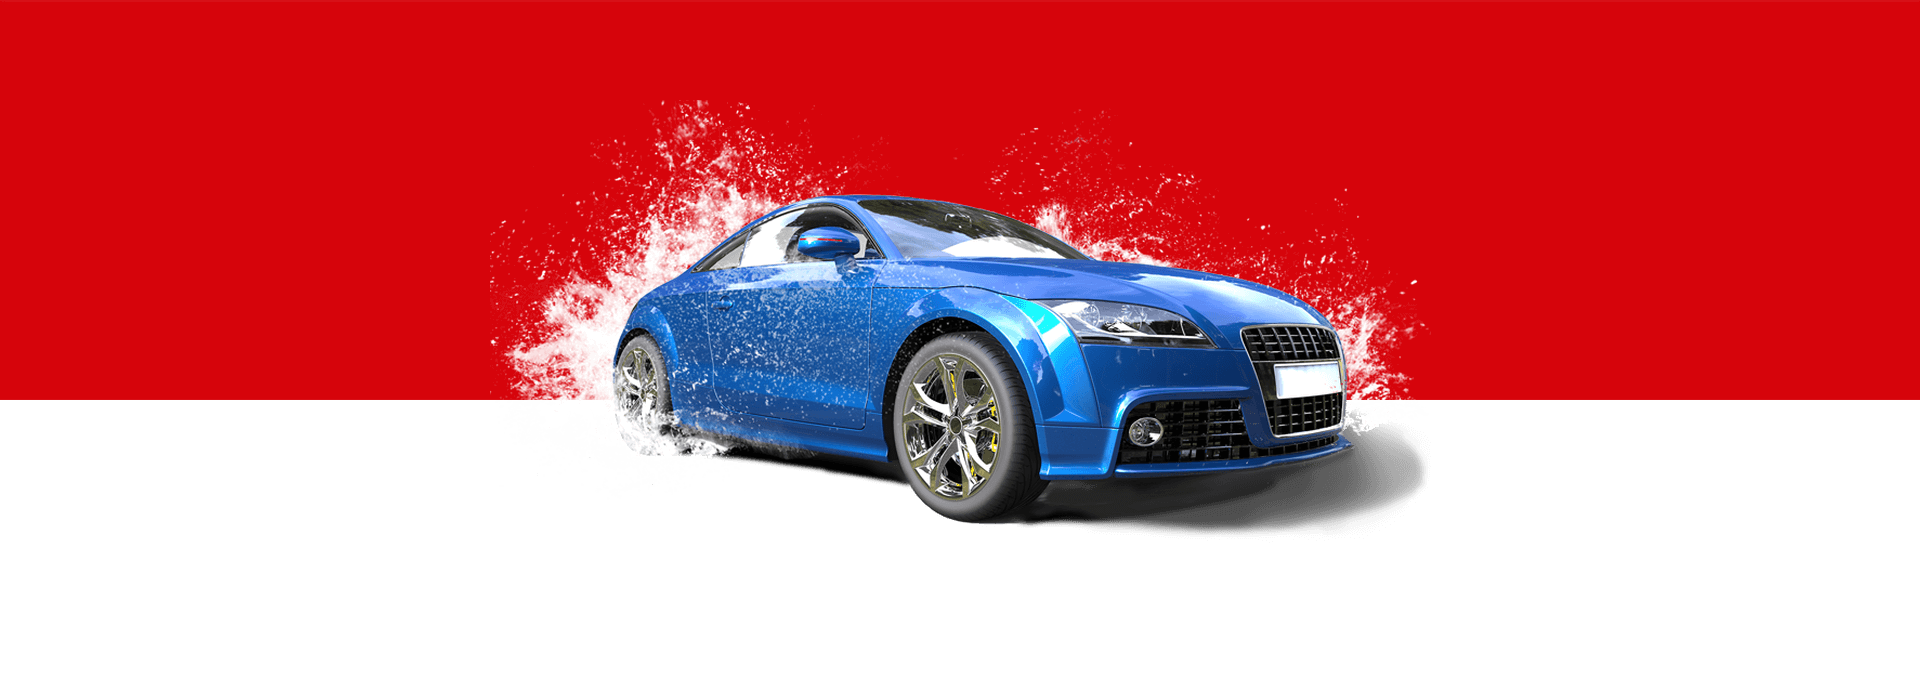 Portage Car Wash, Car Detailing And Interior Car Wash